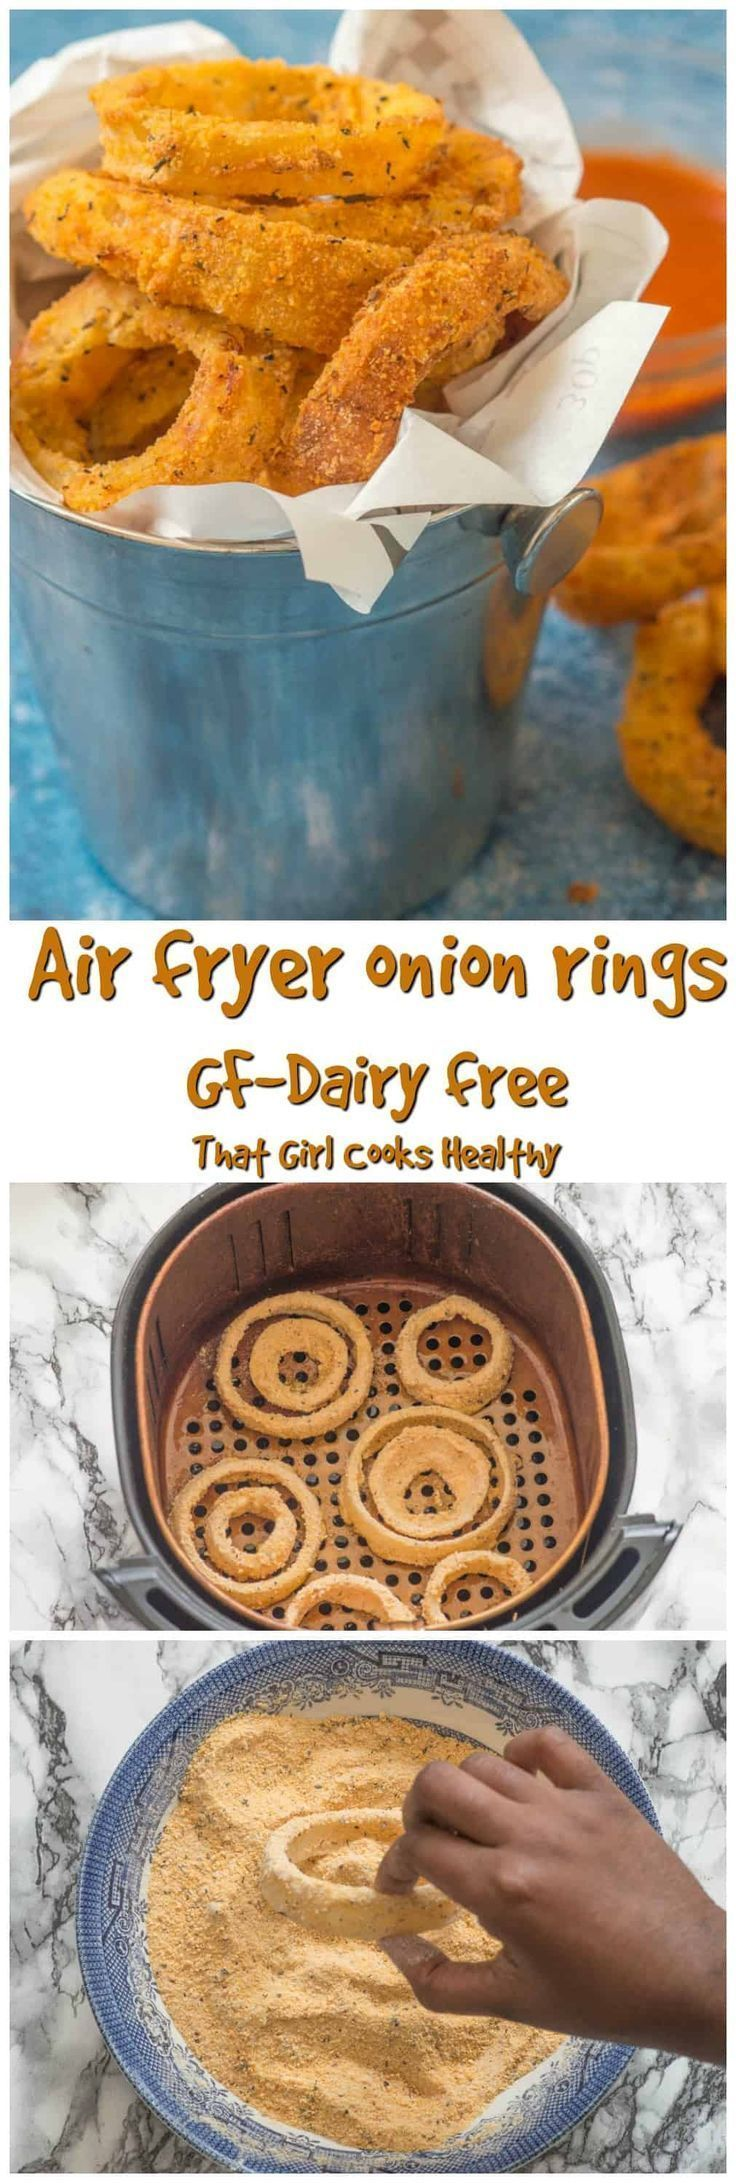 Photo of Gluten free air fryer onion rings